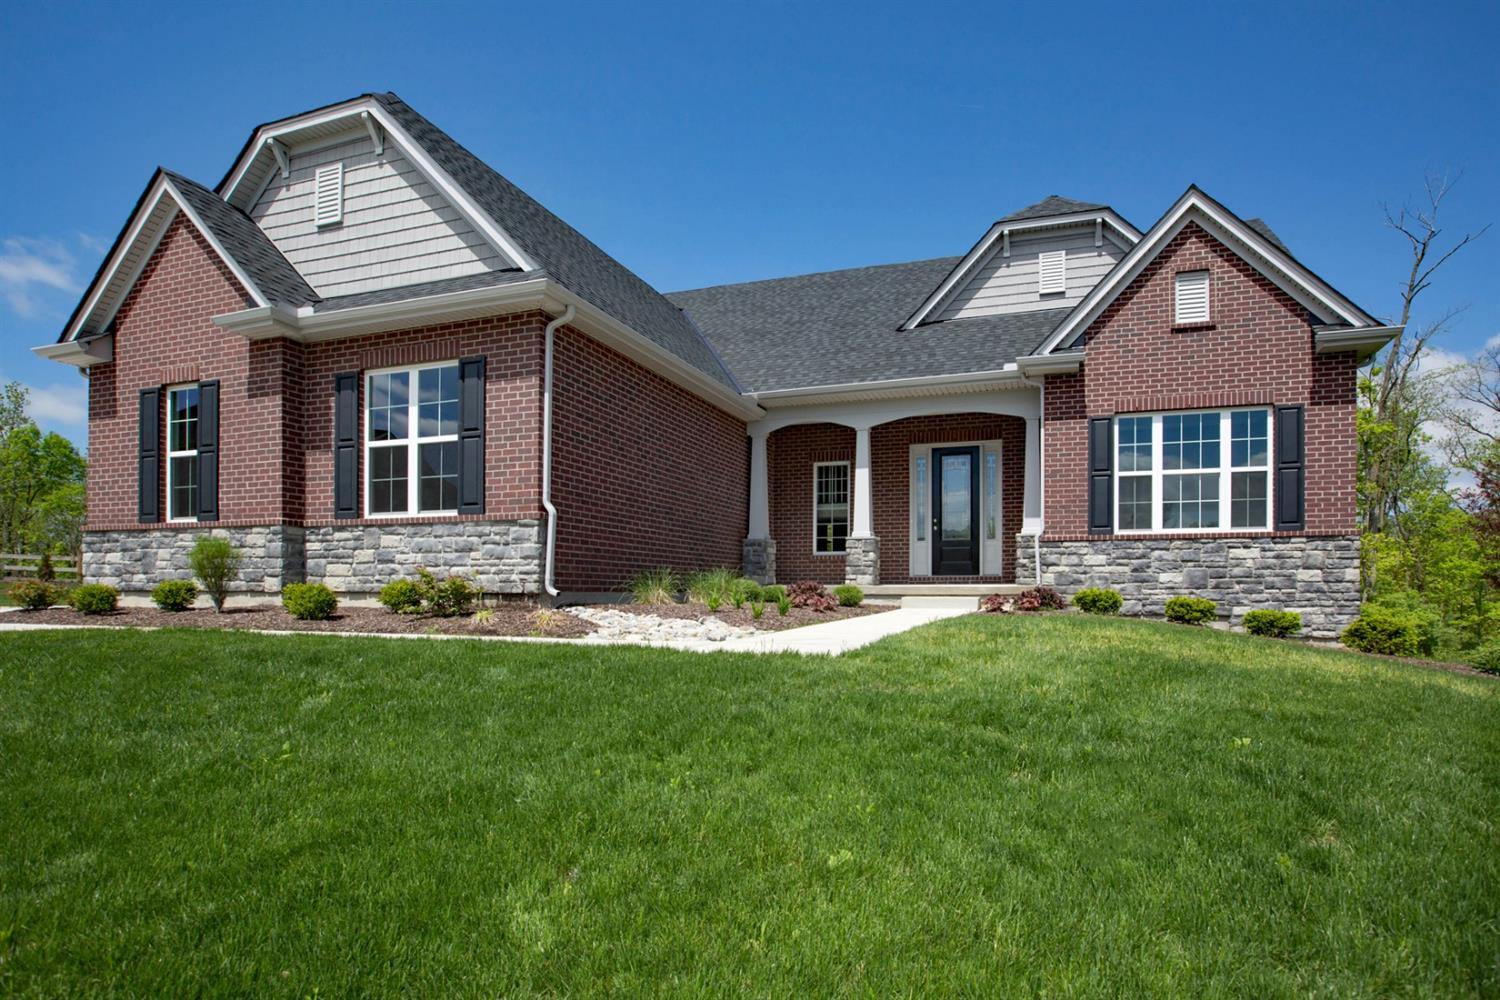 Property for sale at 5292 Woodview Way Unit: AT-8, Liberty Twp,  Ohio 45011